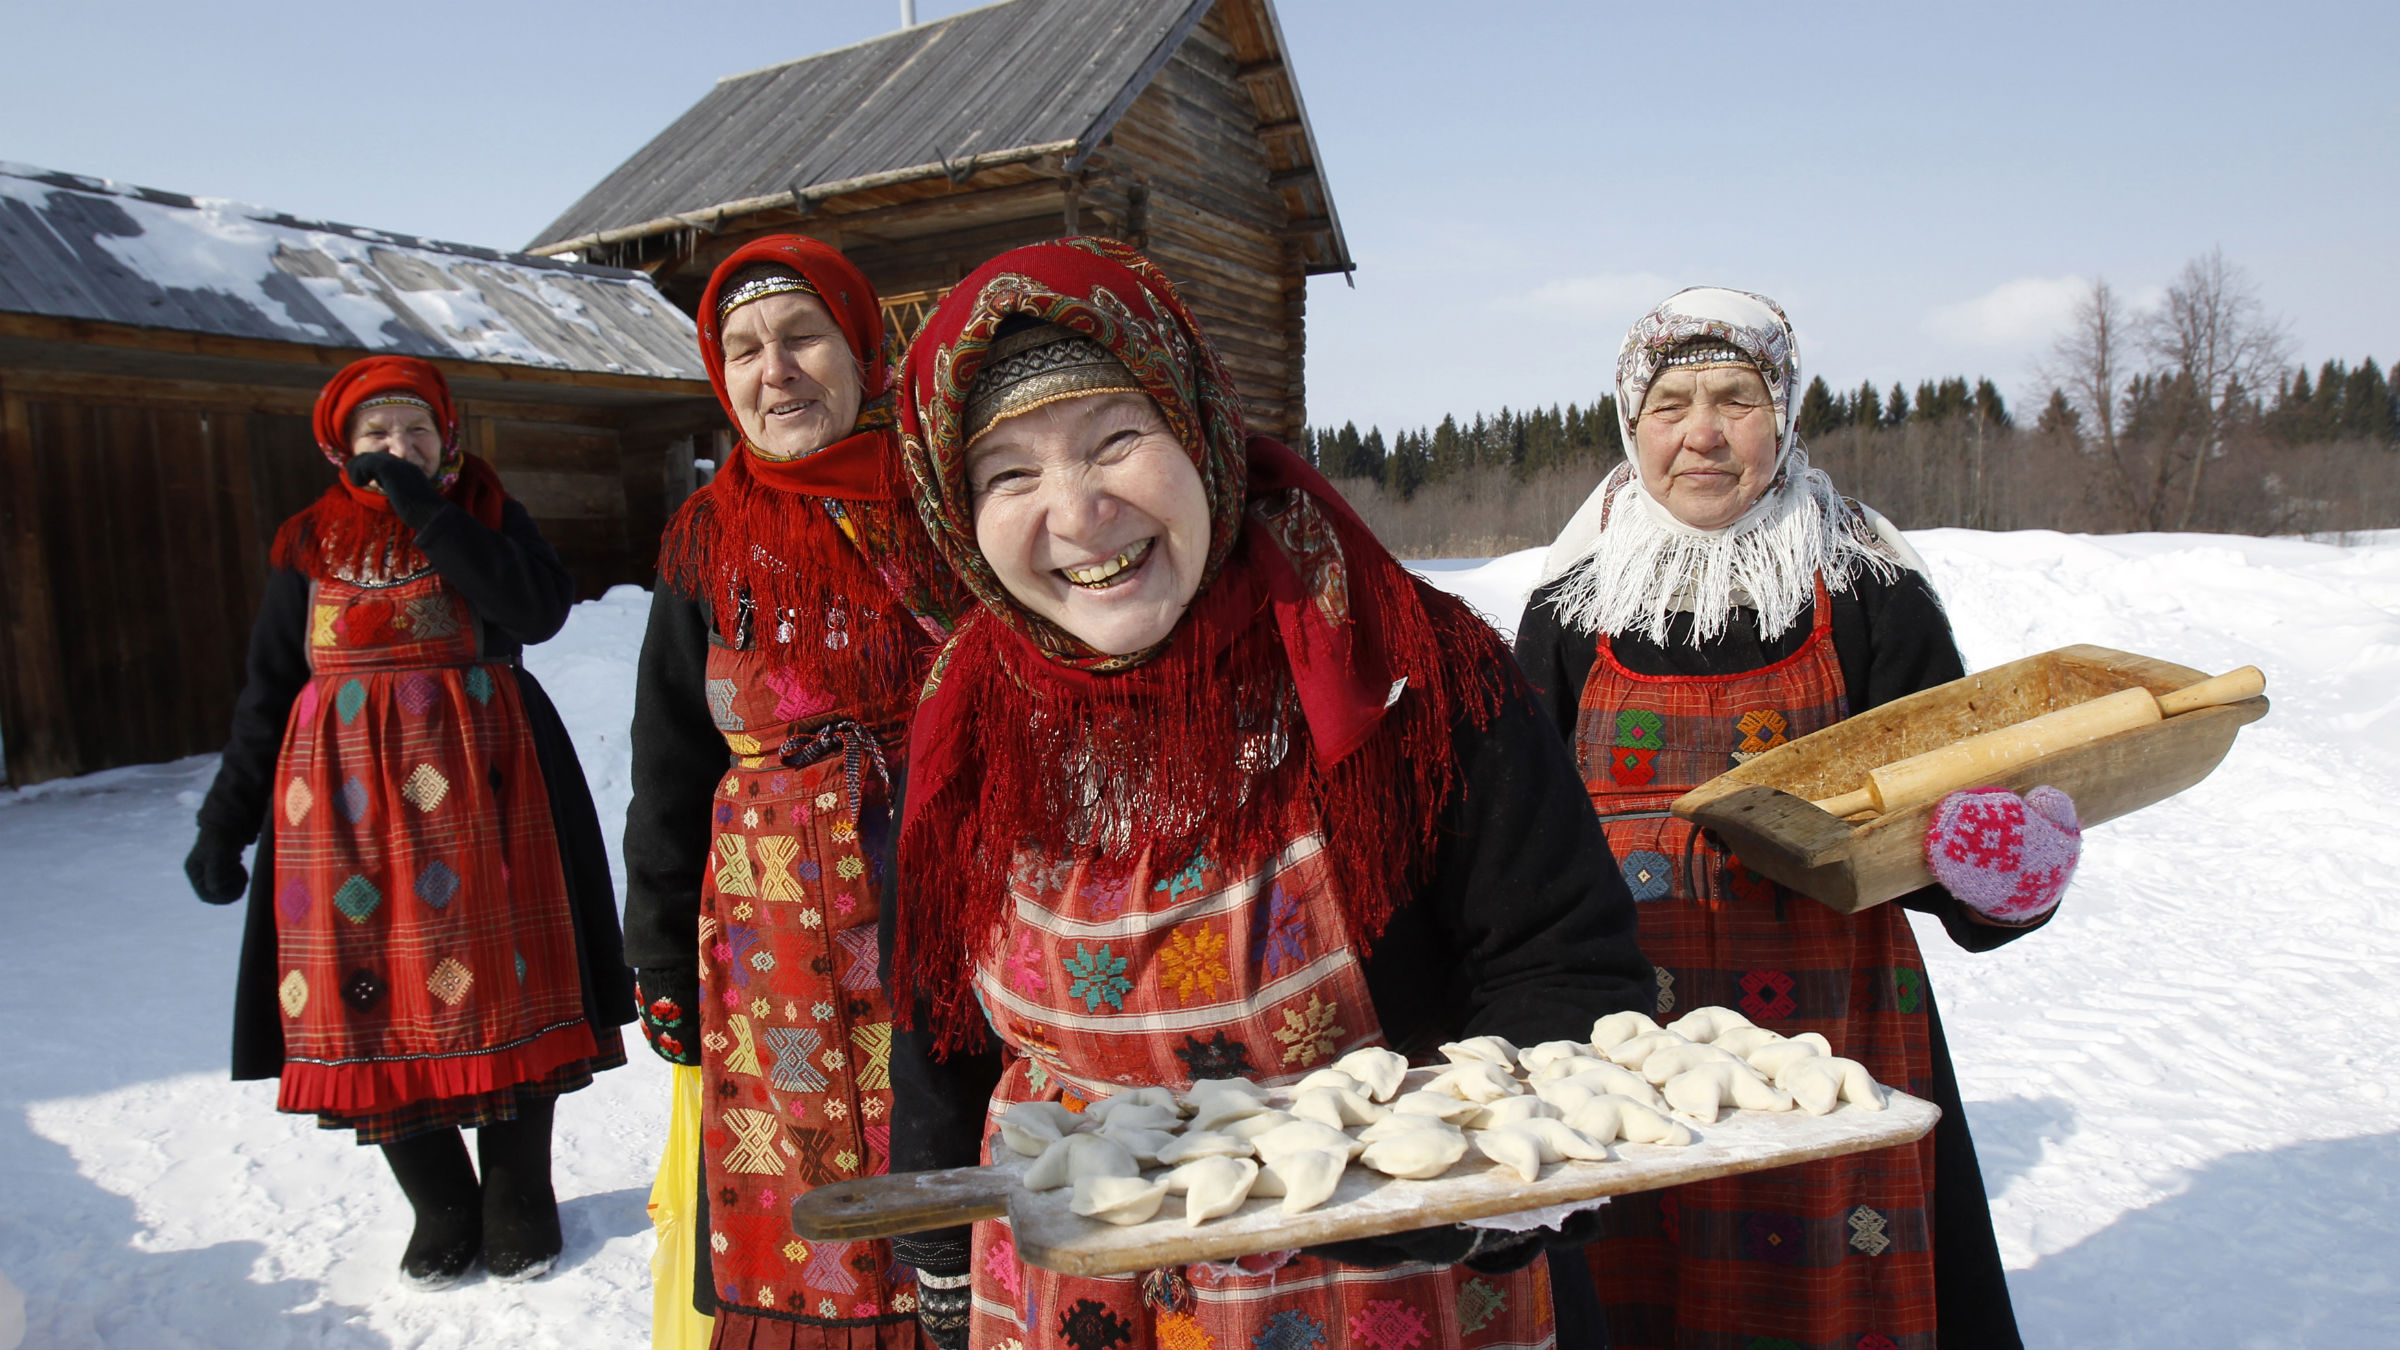 "Alevtina Byagisheva (2nd R), 54, Ekaterina Shklayeva (R), 74, Zoya Dorodova (2nd L), 74, and Granya Baisarova, 62, members of the singing group ""Buranovskiye Babushki"", offer home made dumplings at a folk museum near the village of Ludorvai in the central Russian region of Udmurtia March 16, 2012. A group of ladies ranging in age from 42 to 86 who sing traditional songs and pop classics in their own language have been voted by popular demand to represent Russia in the forthcoming Eurovision song contest. Picture taken March 16."